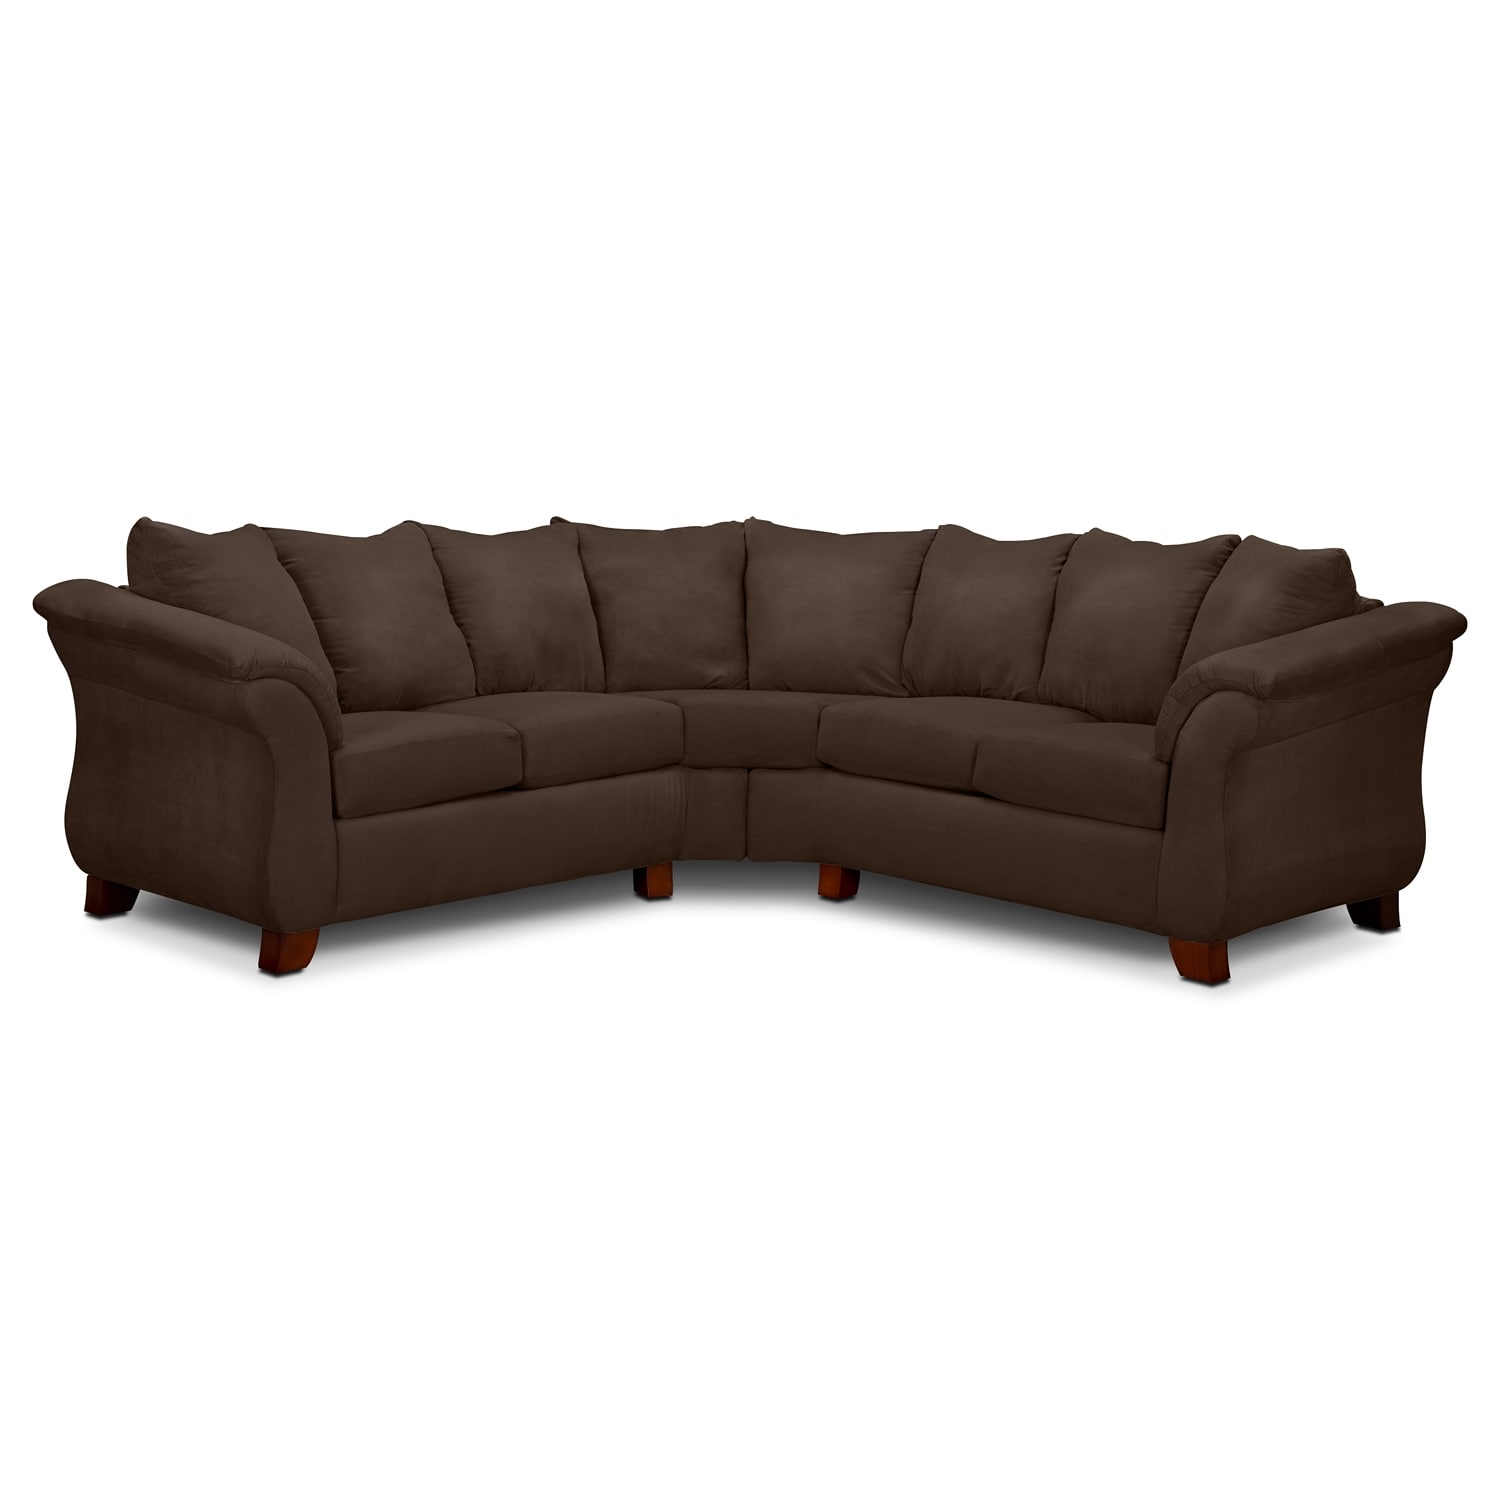 Adrian 2-Piece Sectional - Chocolate | Value City Furniture and ...